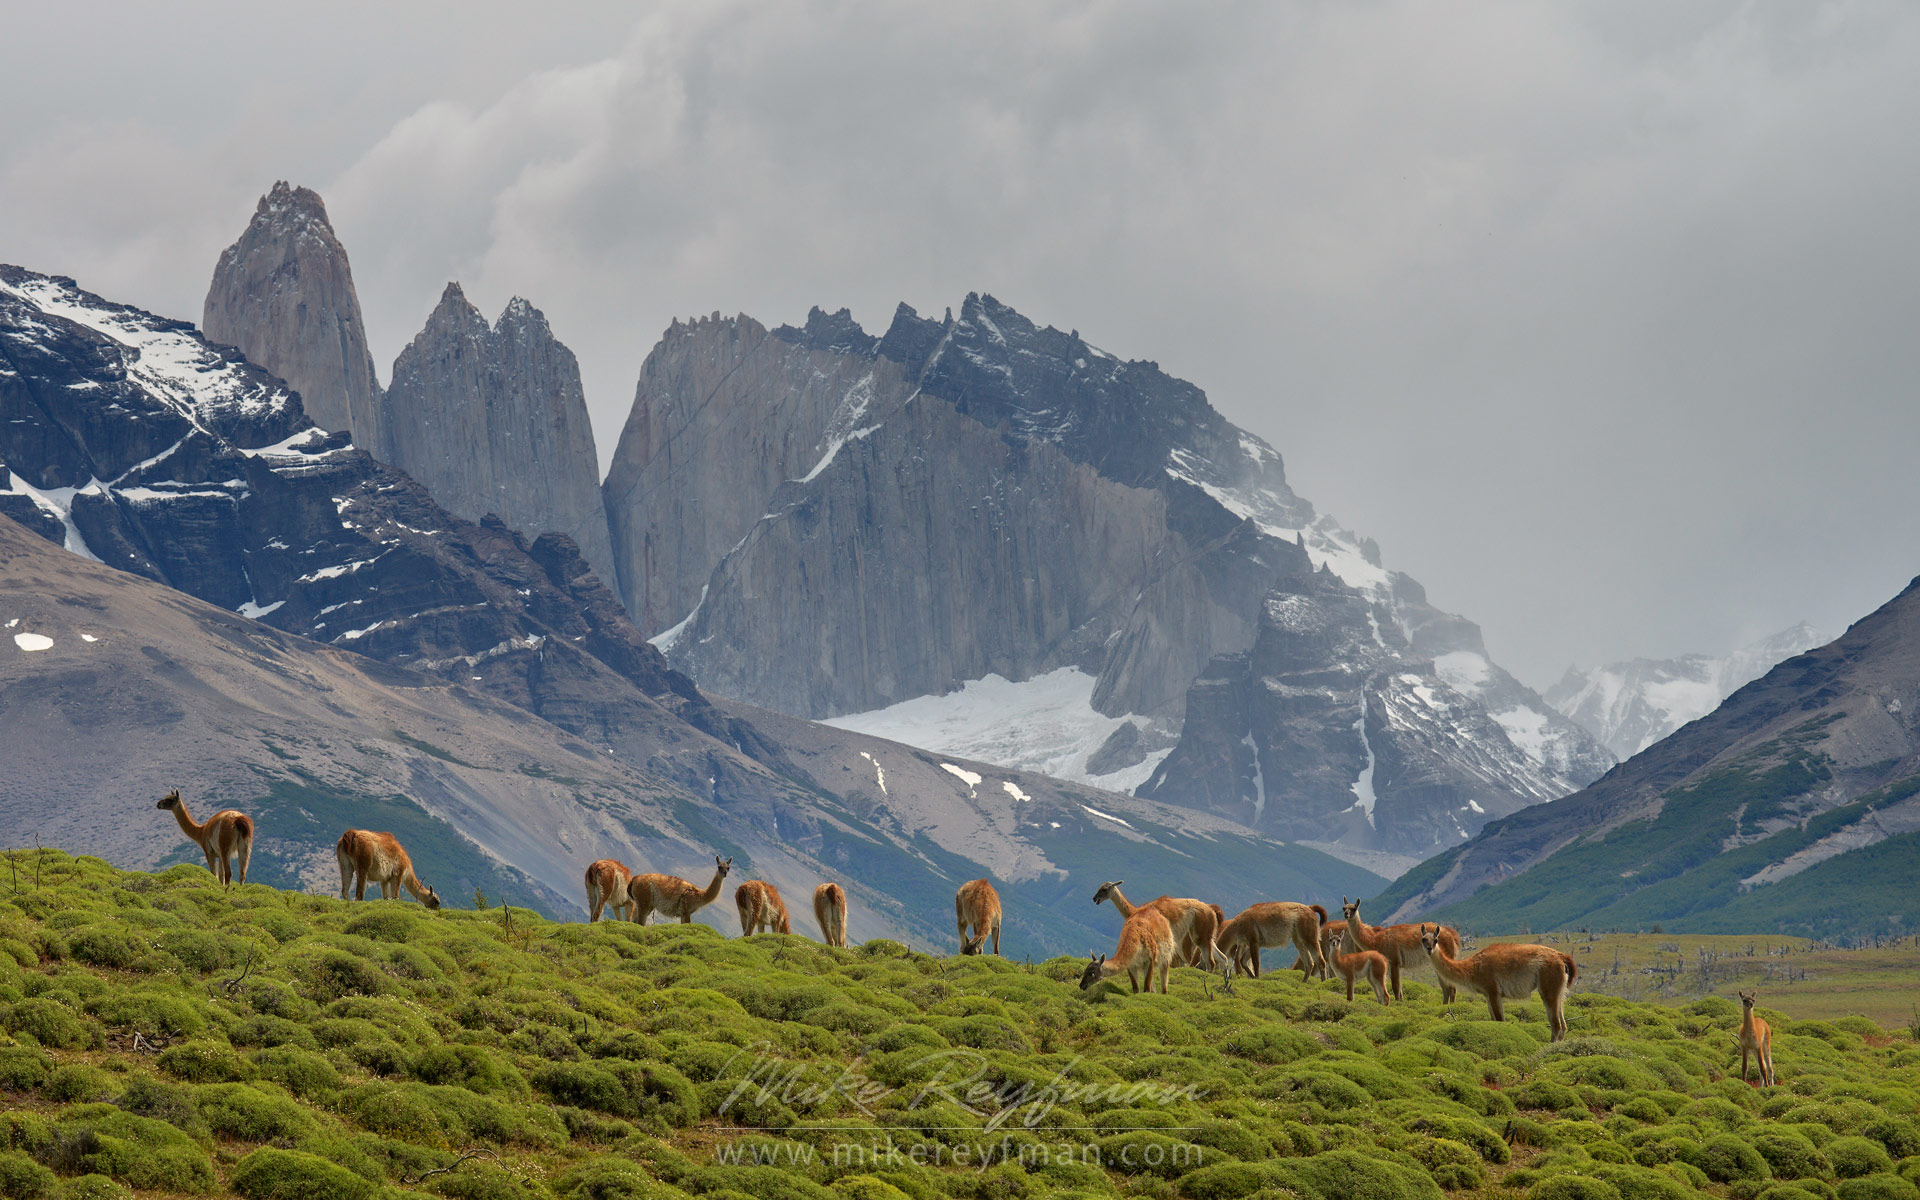 Big flock of Guanacos (Lama guanicoe) graze in Torres del Paine National park. Towers of Paine are on the backdrop. Ultima Esperanza Province, Magallanes and Antartica Chilena Region XII, Patagonia, Chile. - Patagonia-Wildlife-and-Horses - Mike Reyfman Photography